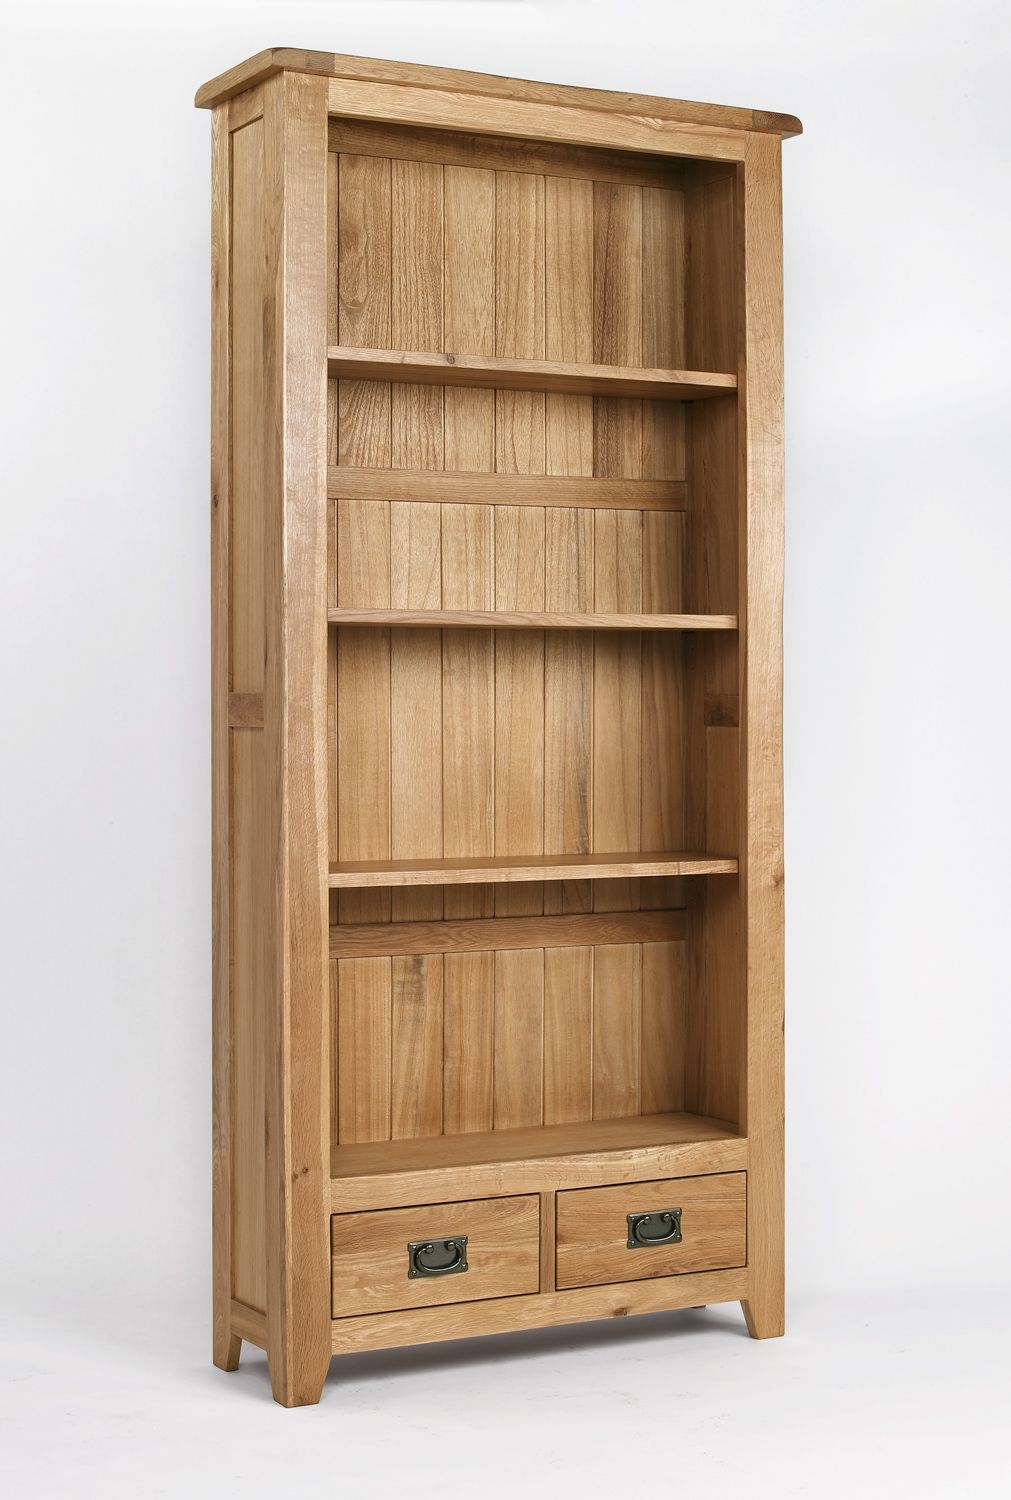 Wooden Bookcases Add Classic Aura To Your Home Tall Bookcases Oak Bookcase Wooden Bookcase